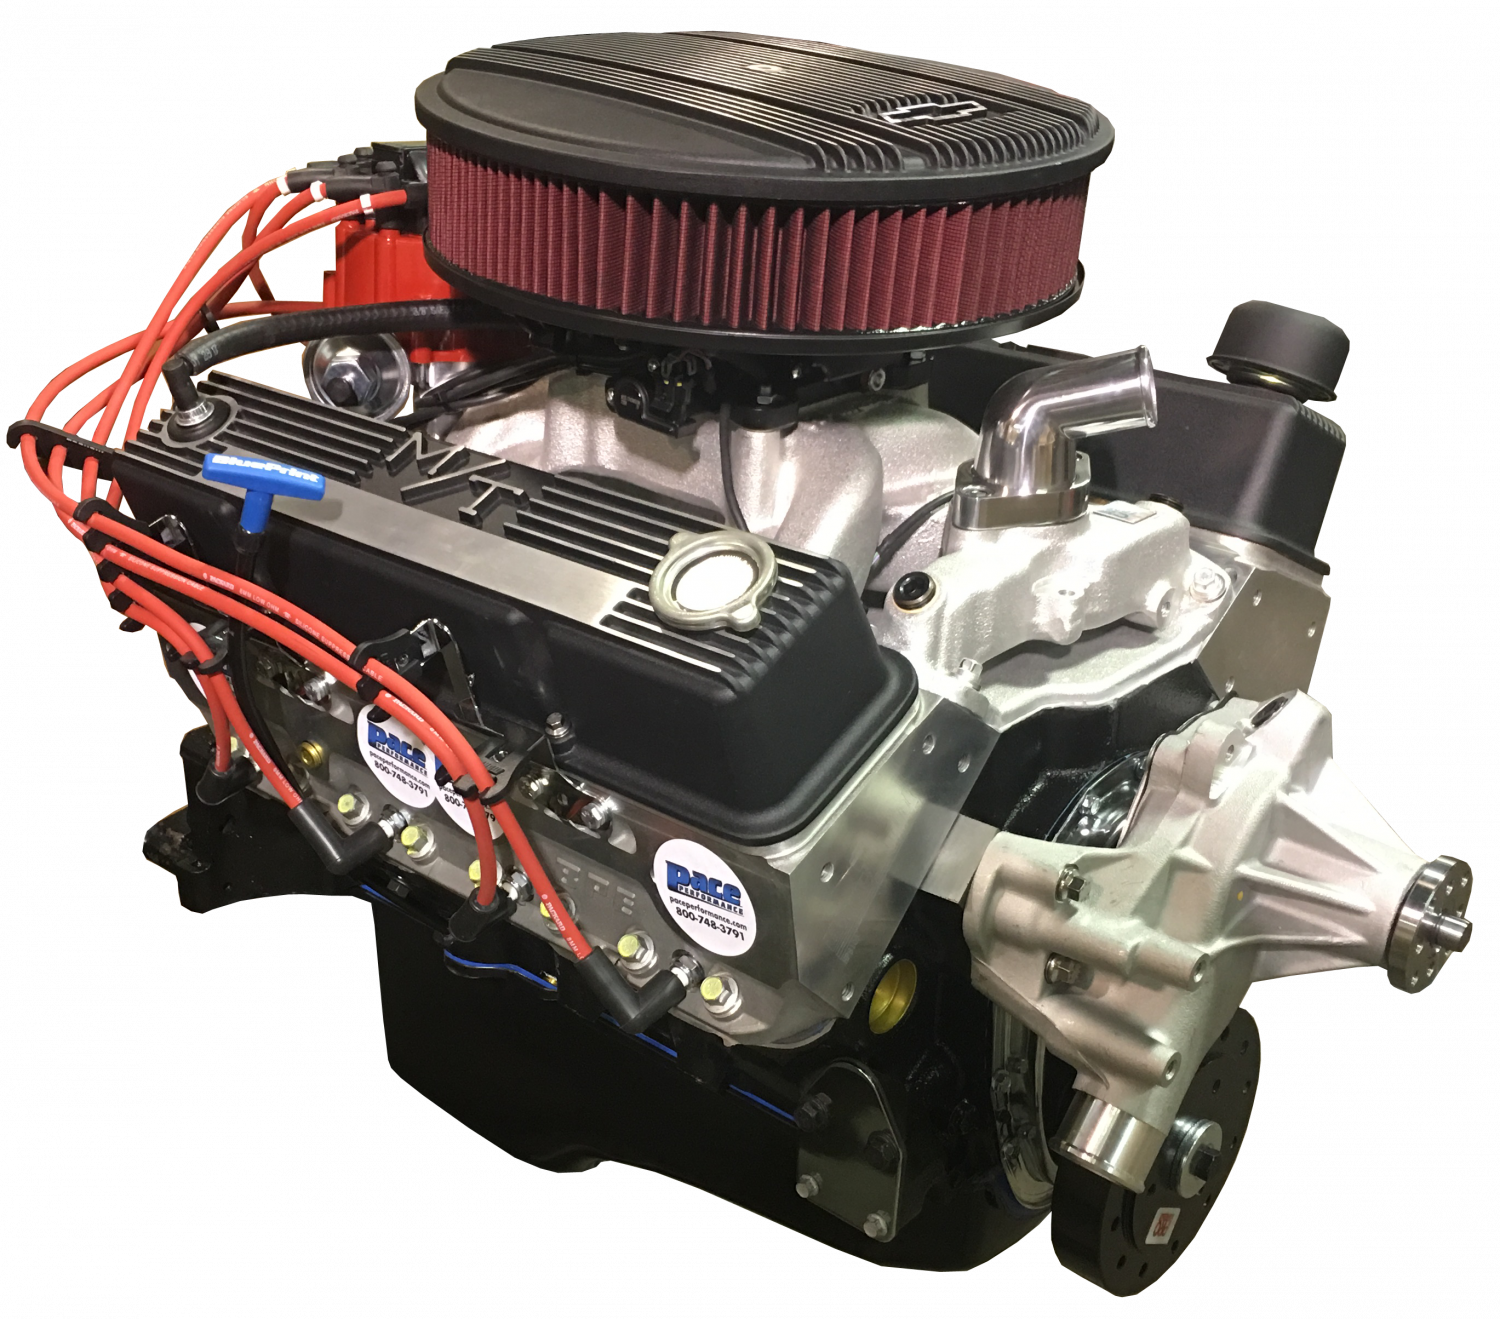 Bp3961ct 2fx blueprint sbc 396cid 500hp crate engine 1pc rear seal 0 malvernweather Choice Image